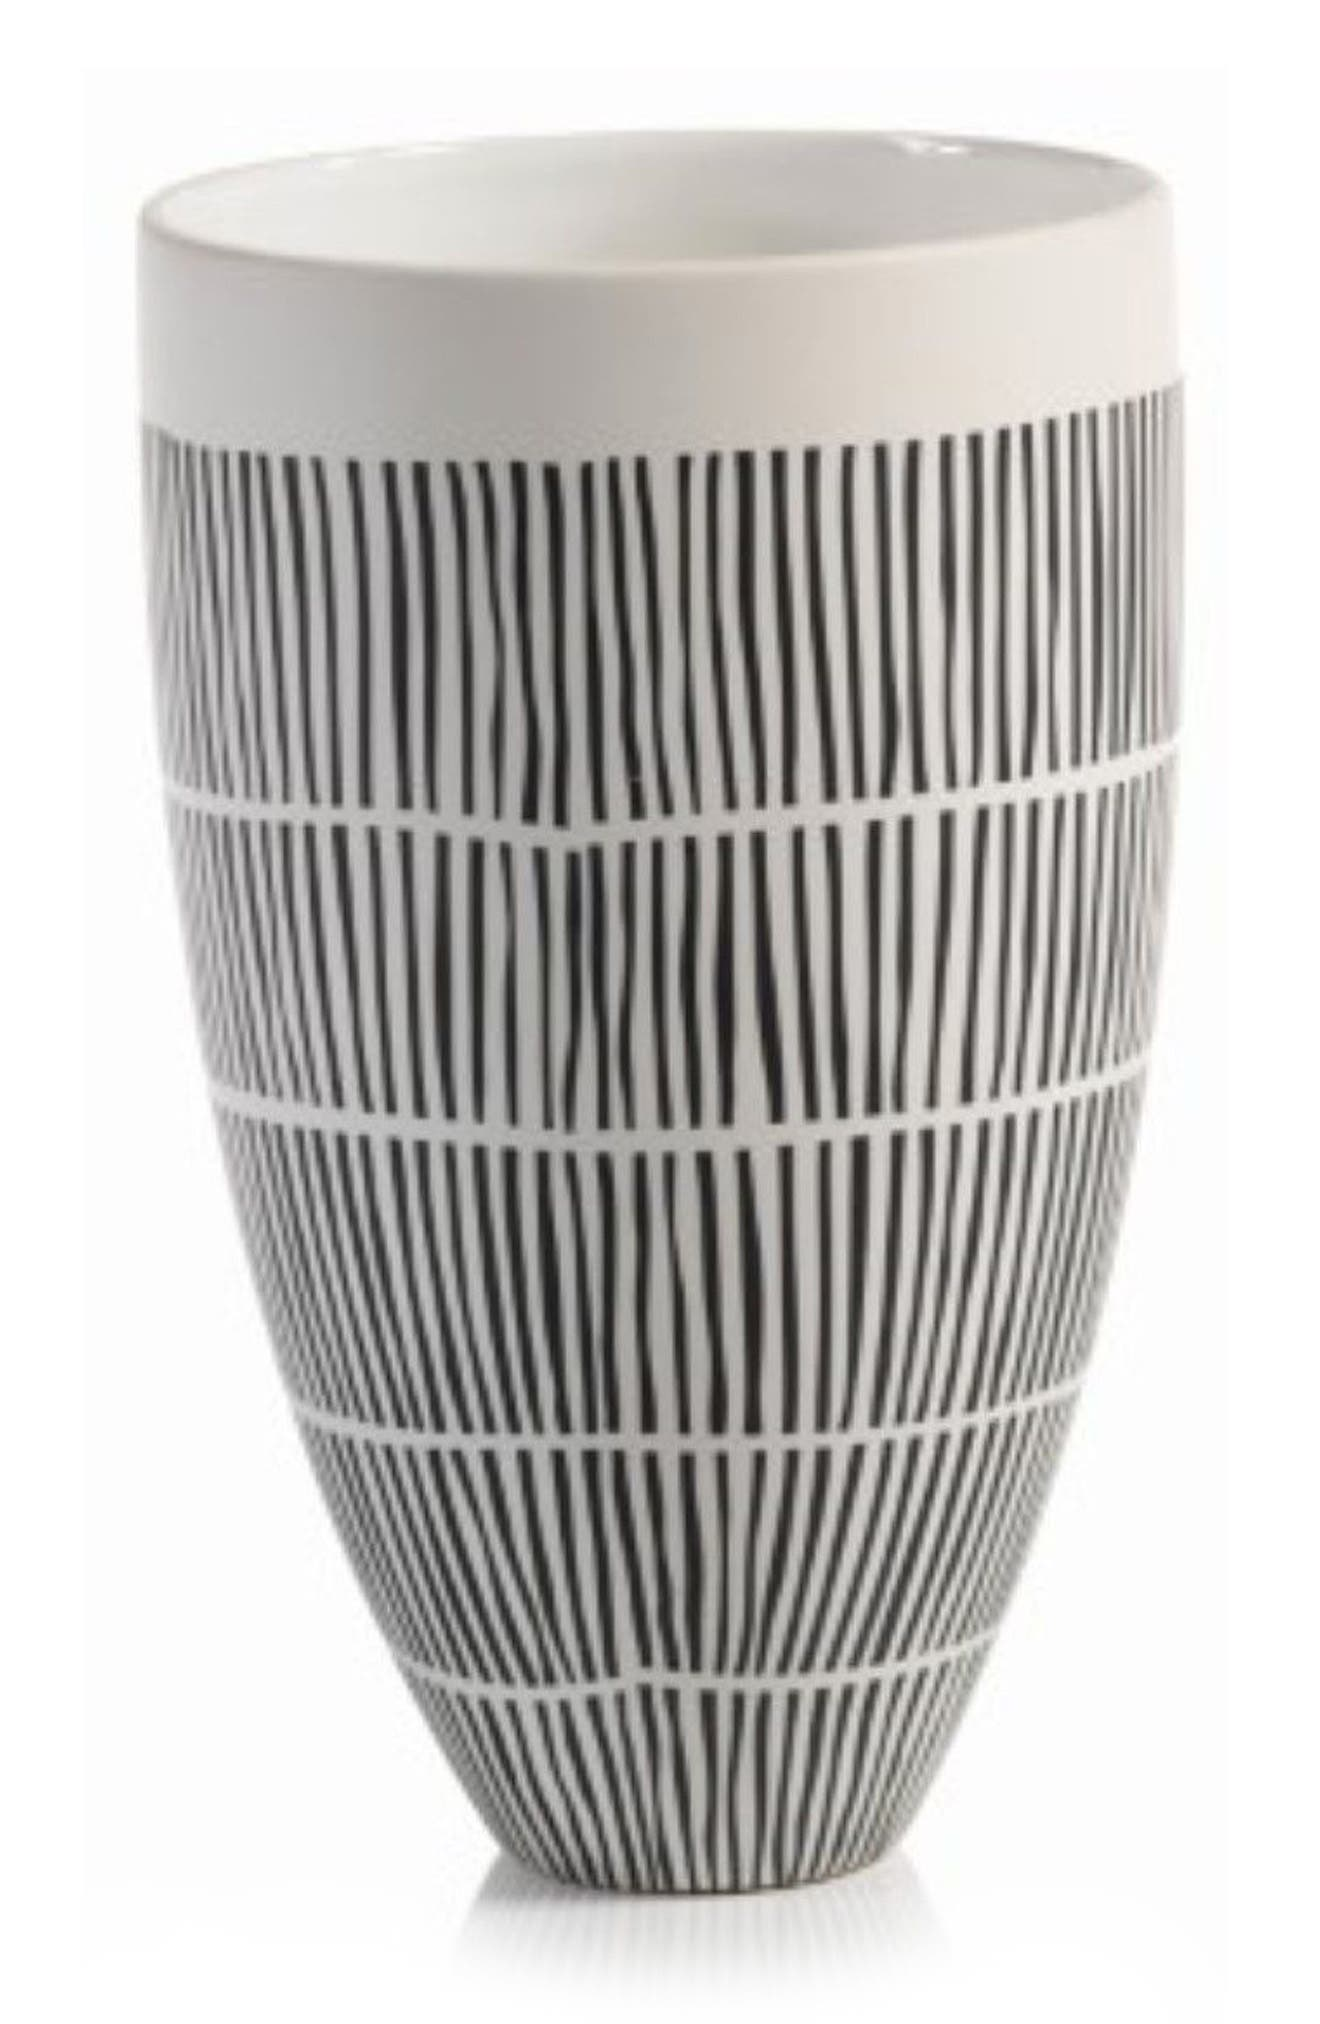 Marquesa Ceramic Vase,                         Main,                         color, White/ Black